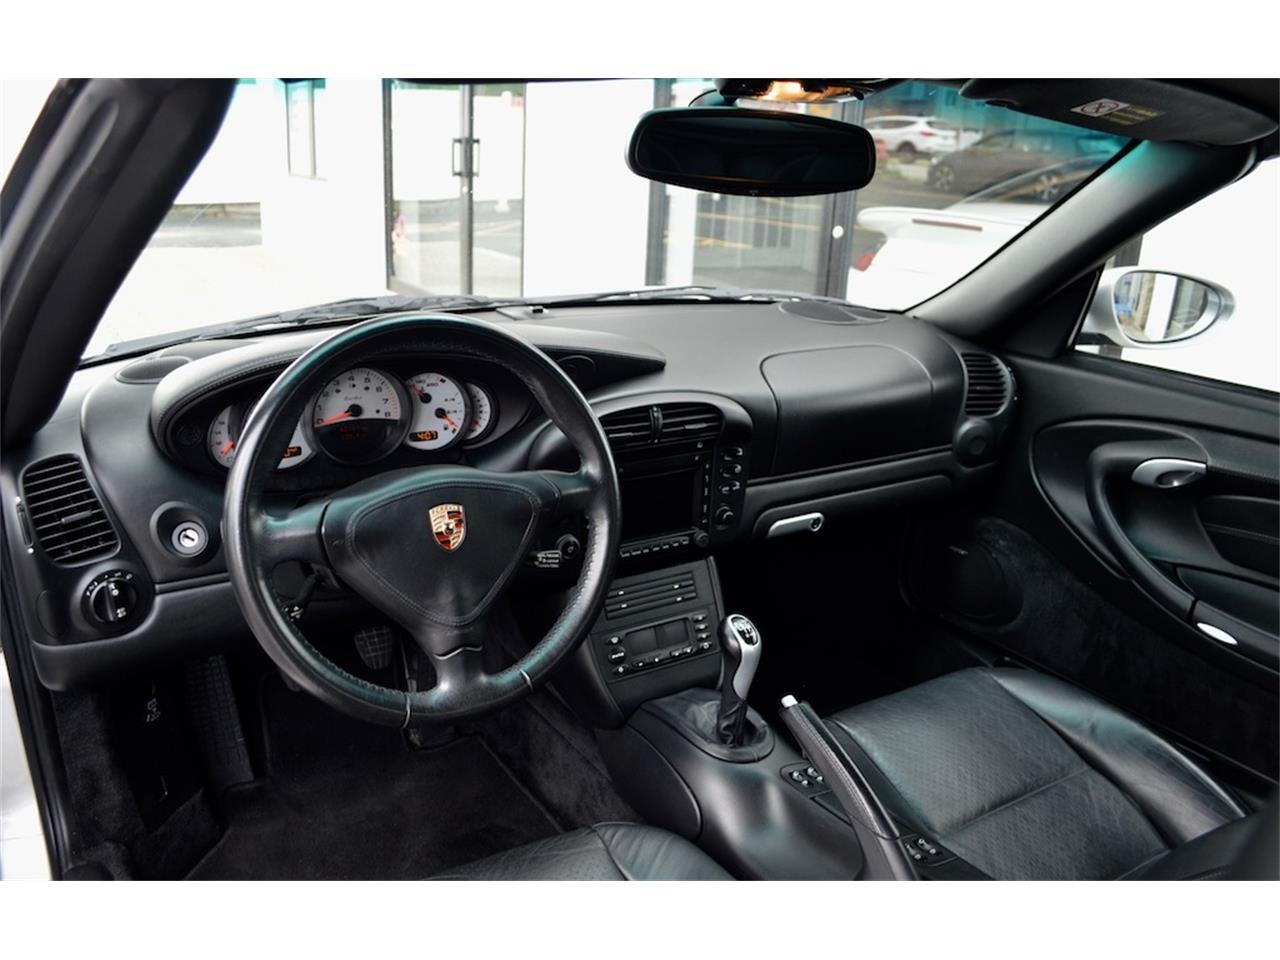 Large Picture of '04 996 Turbo Cabriolet located in Pennsylvania Offered by Holt Motorsports - NQV0